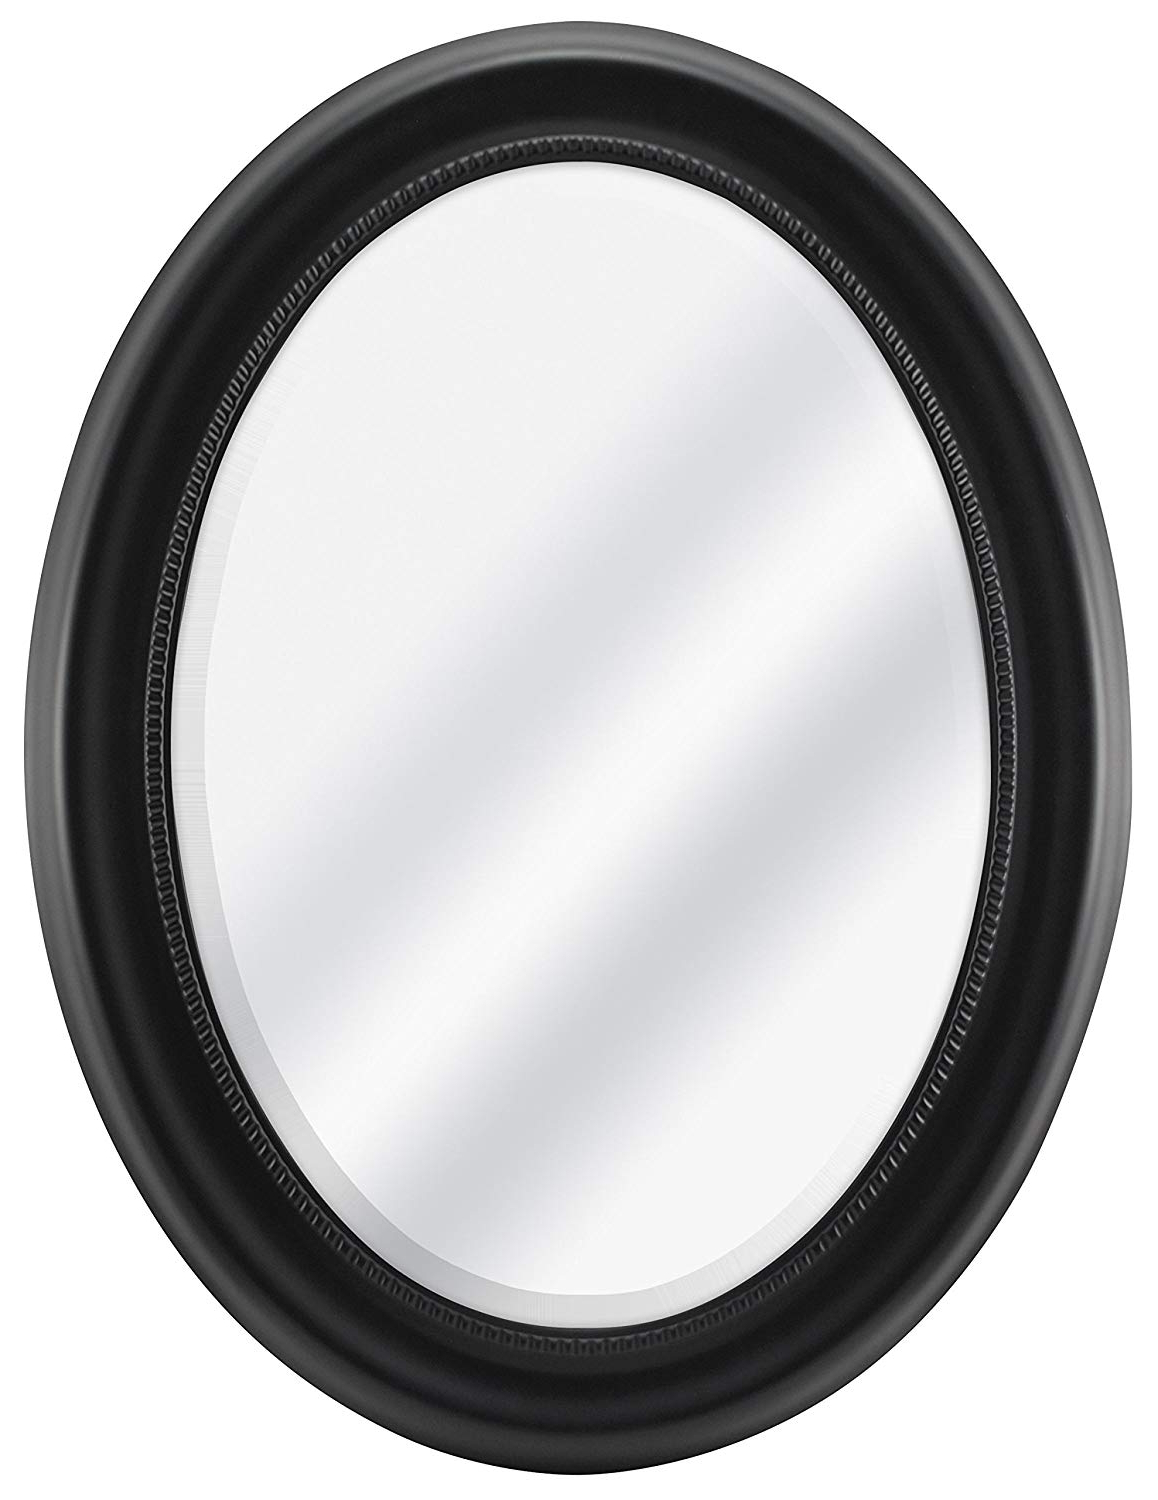 Mcs Beaded Oval Wall Mirror, 22.5 X (View 20 of 20)